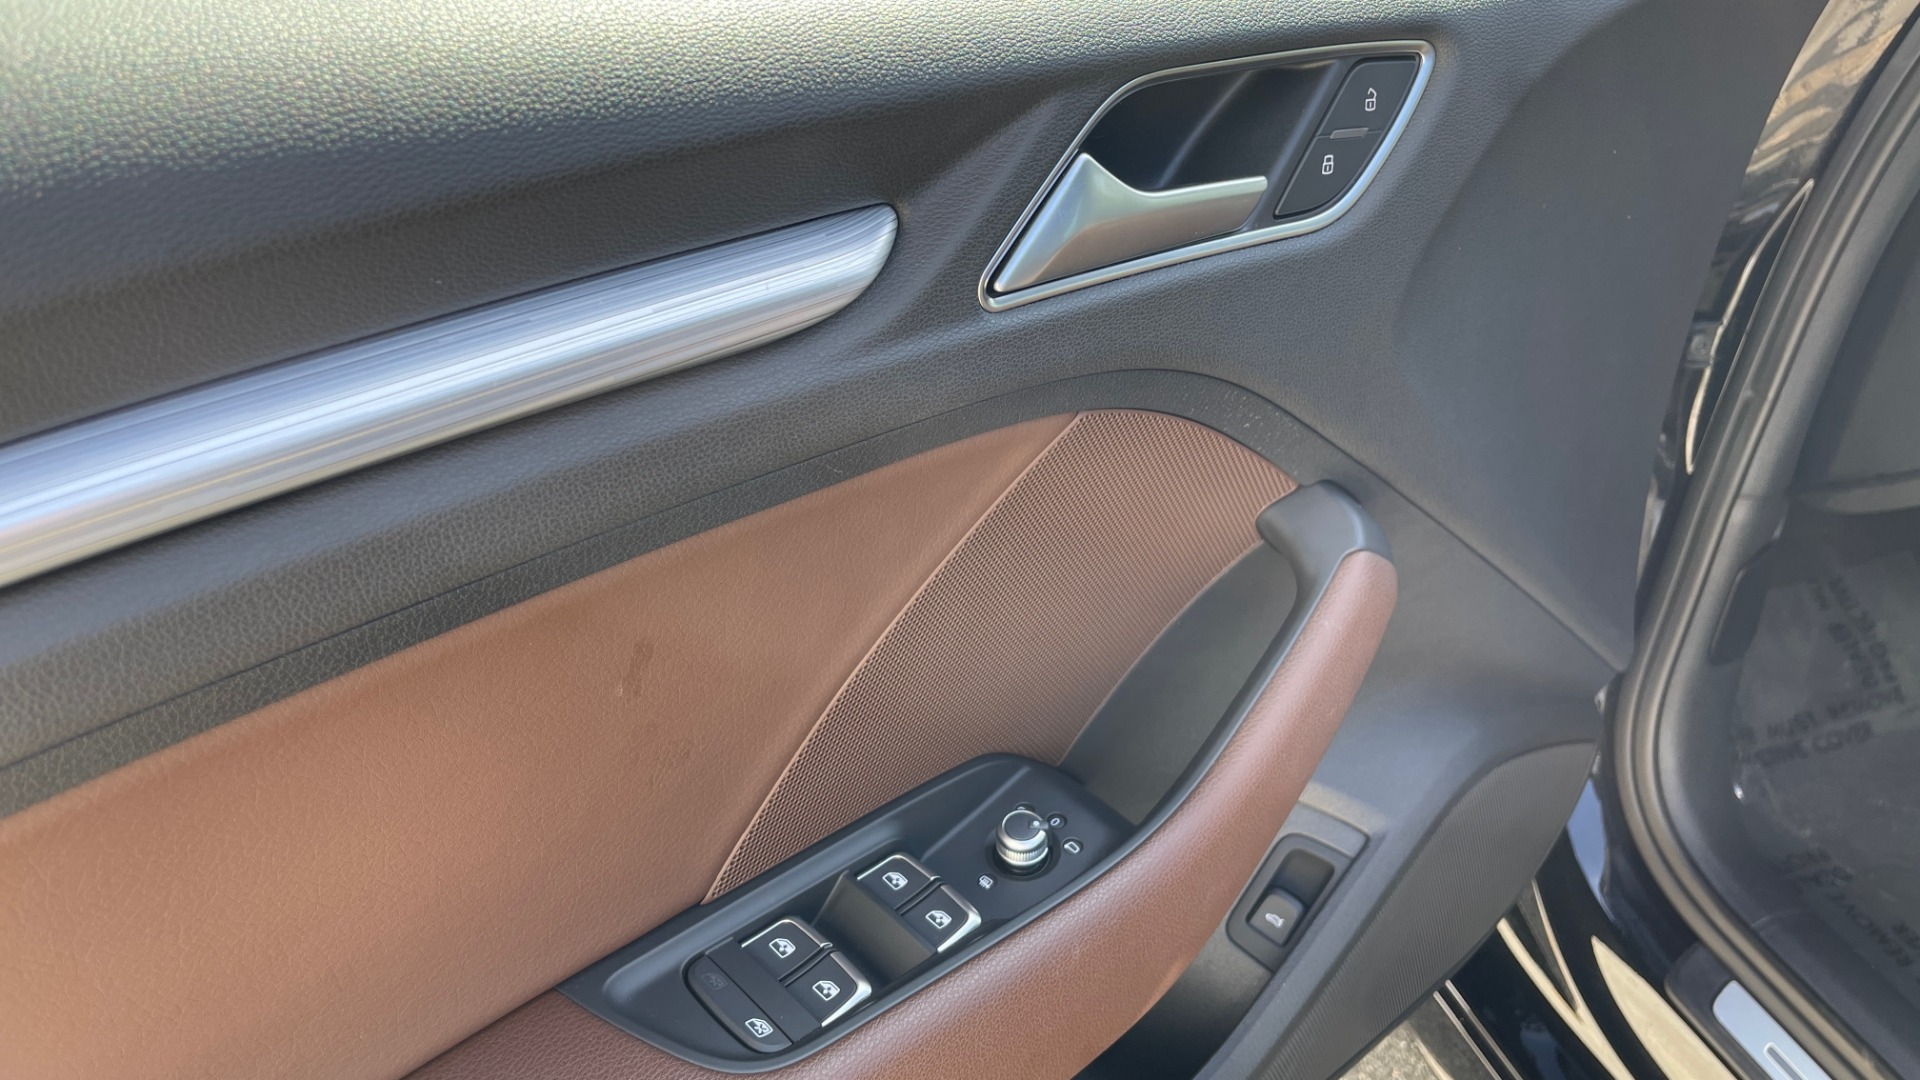 Used 2018 Audi A3 SEDAN PREMIUM PLUS / S-LINE / PANO-ROOF / PARK SYS / REARVIEW for sale $31,795 at Formula Imports in Charlotte NC 28227 25